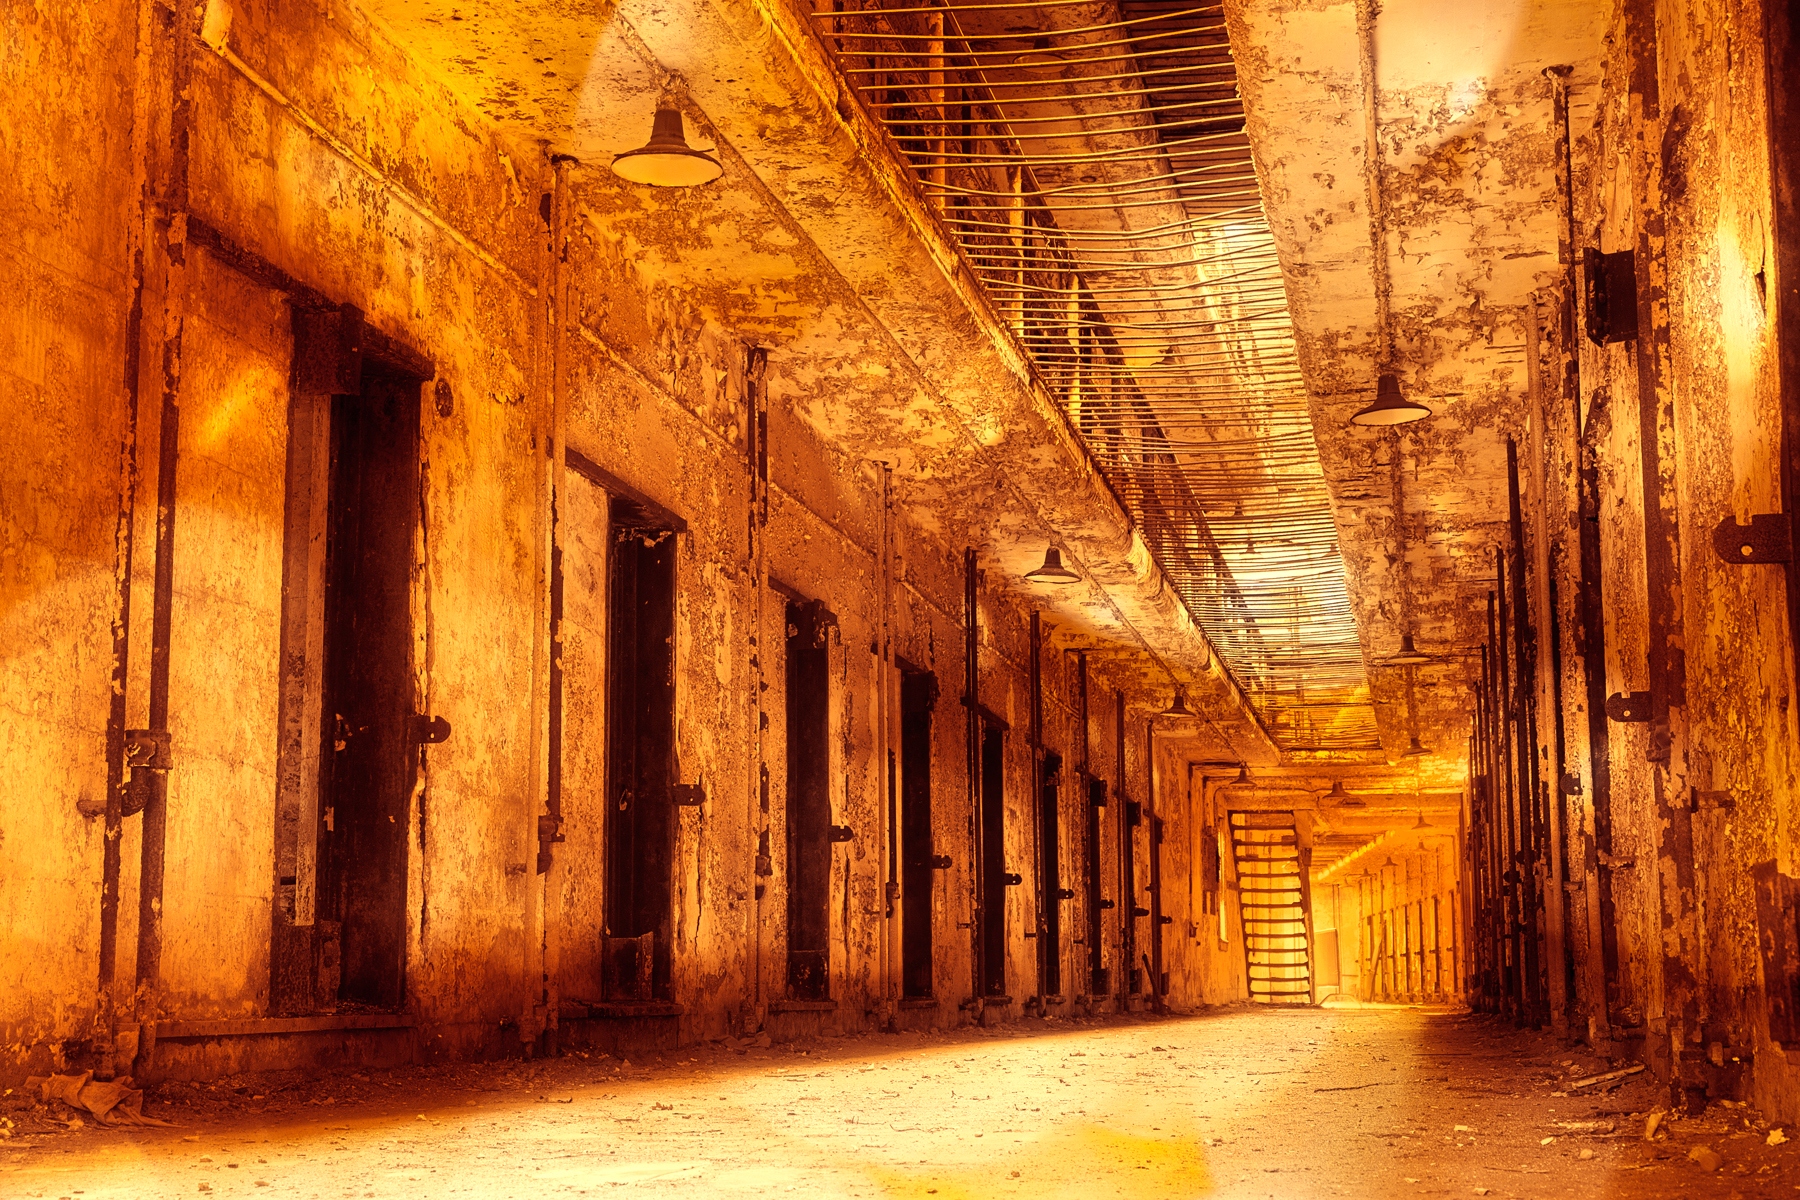 Infernal Prison Corridor, Abandoned, Pipes, Rusty, Rustic, HQ Photo